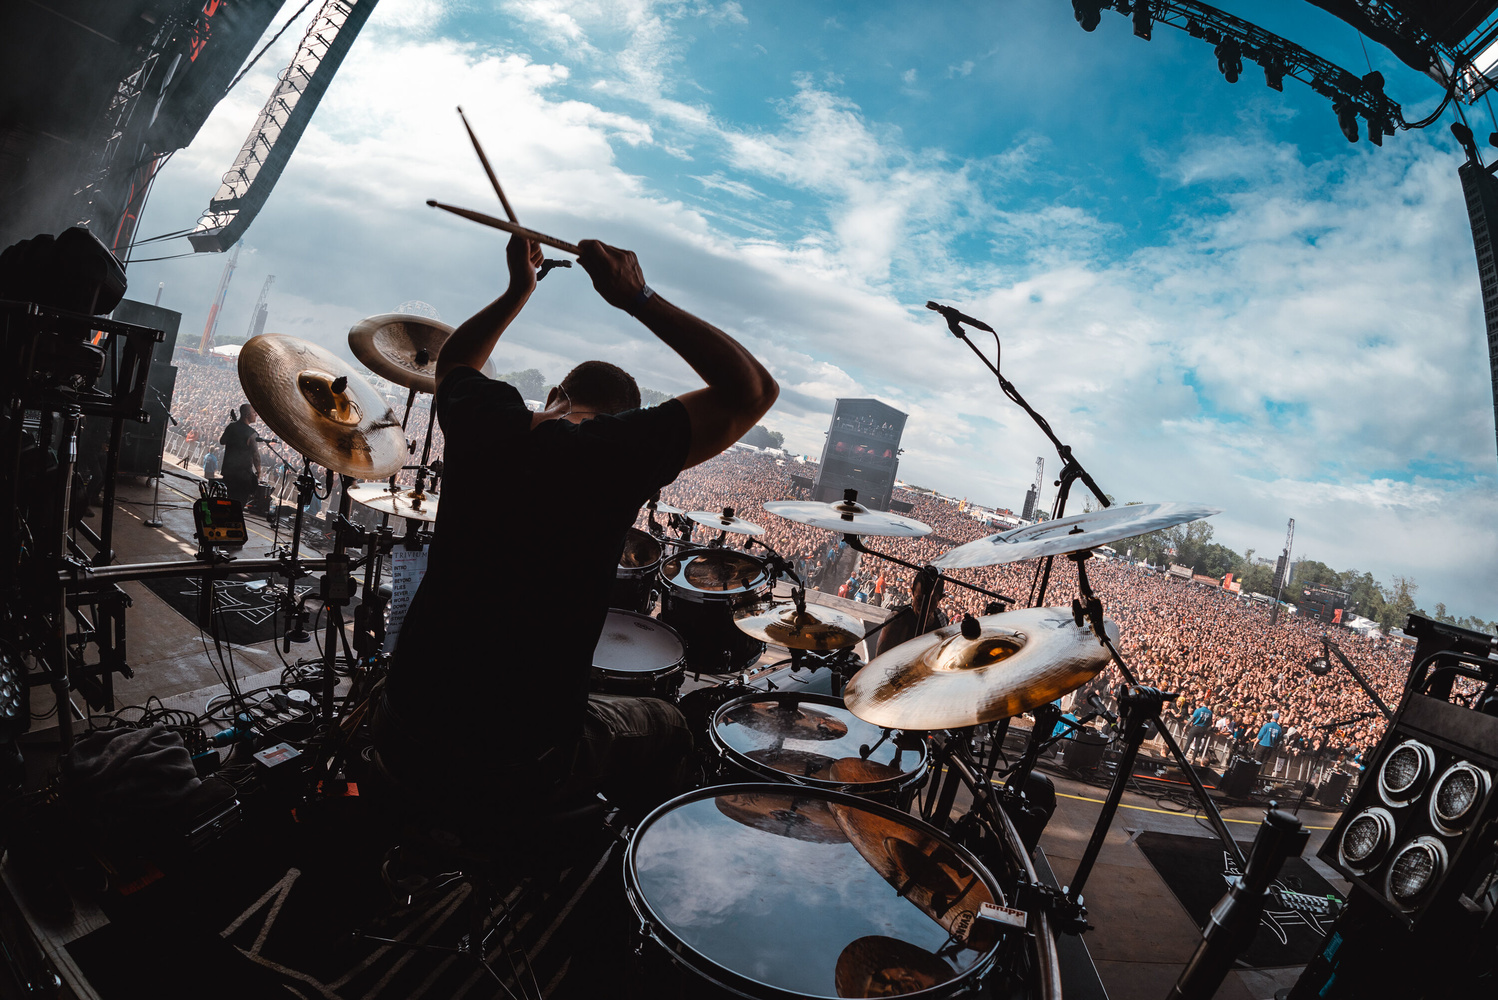 Trivium at Download Festival 2019 by James Bridle